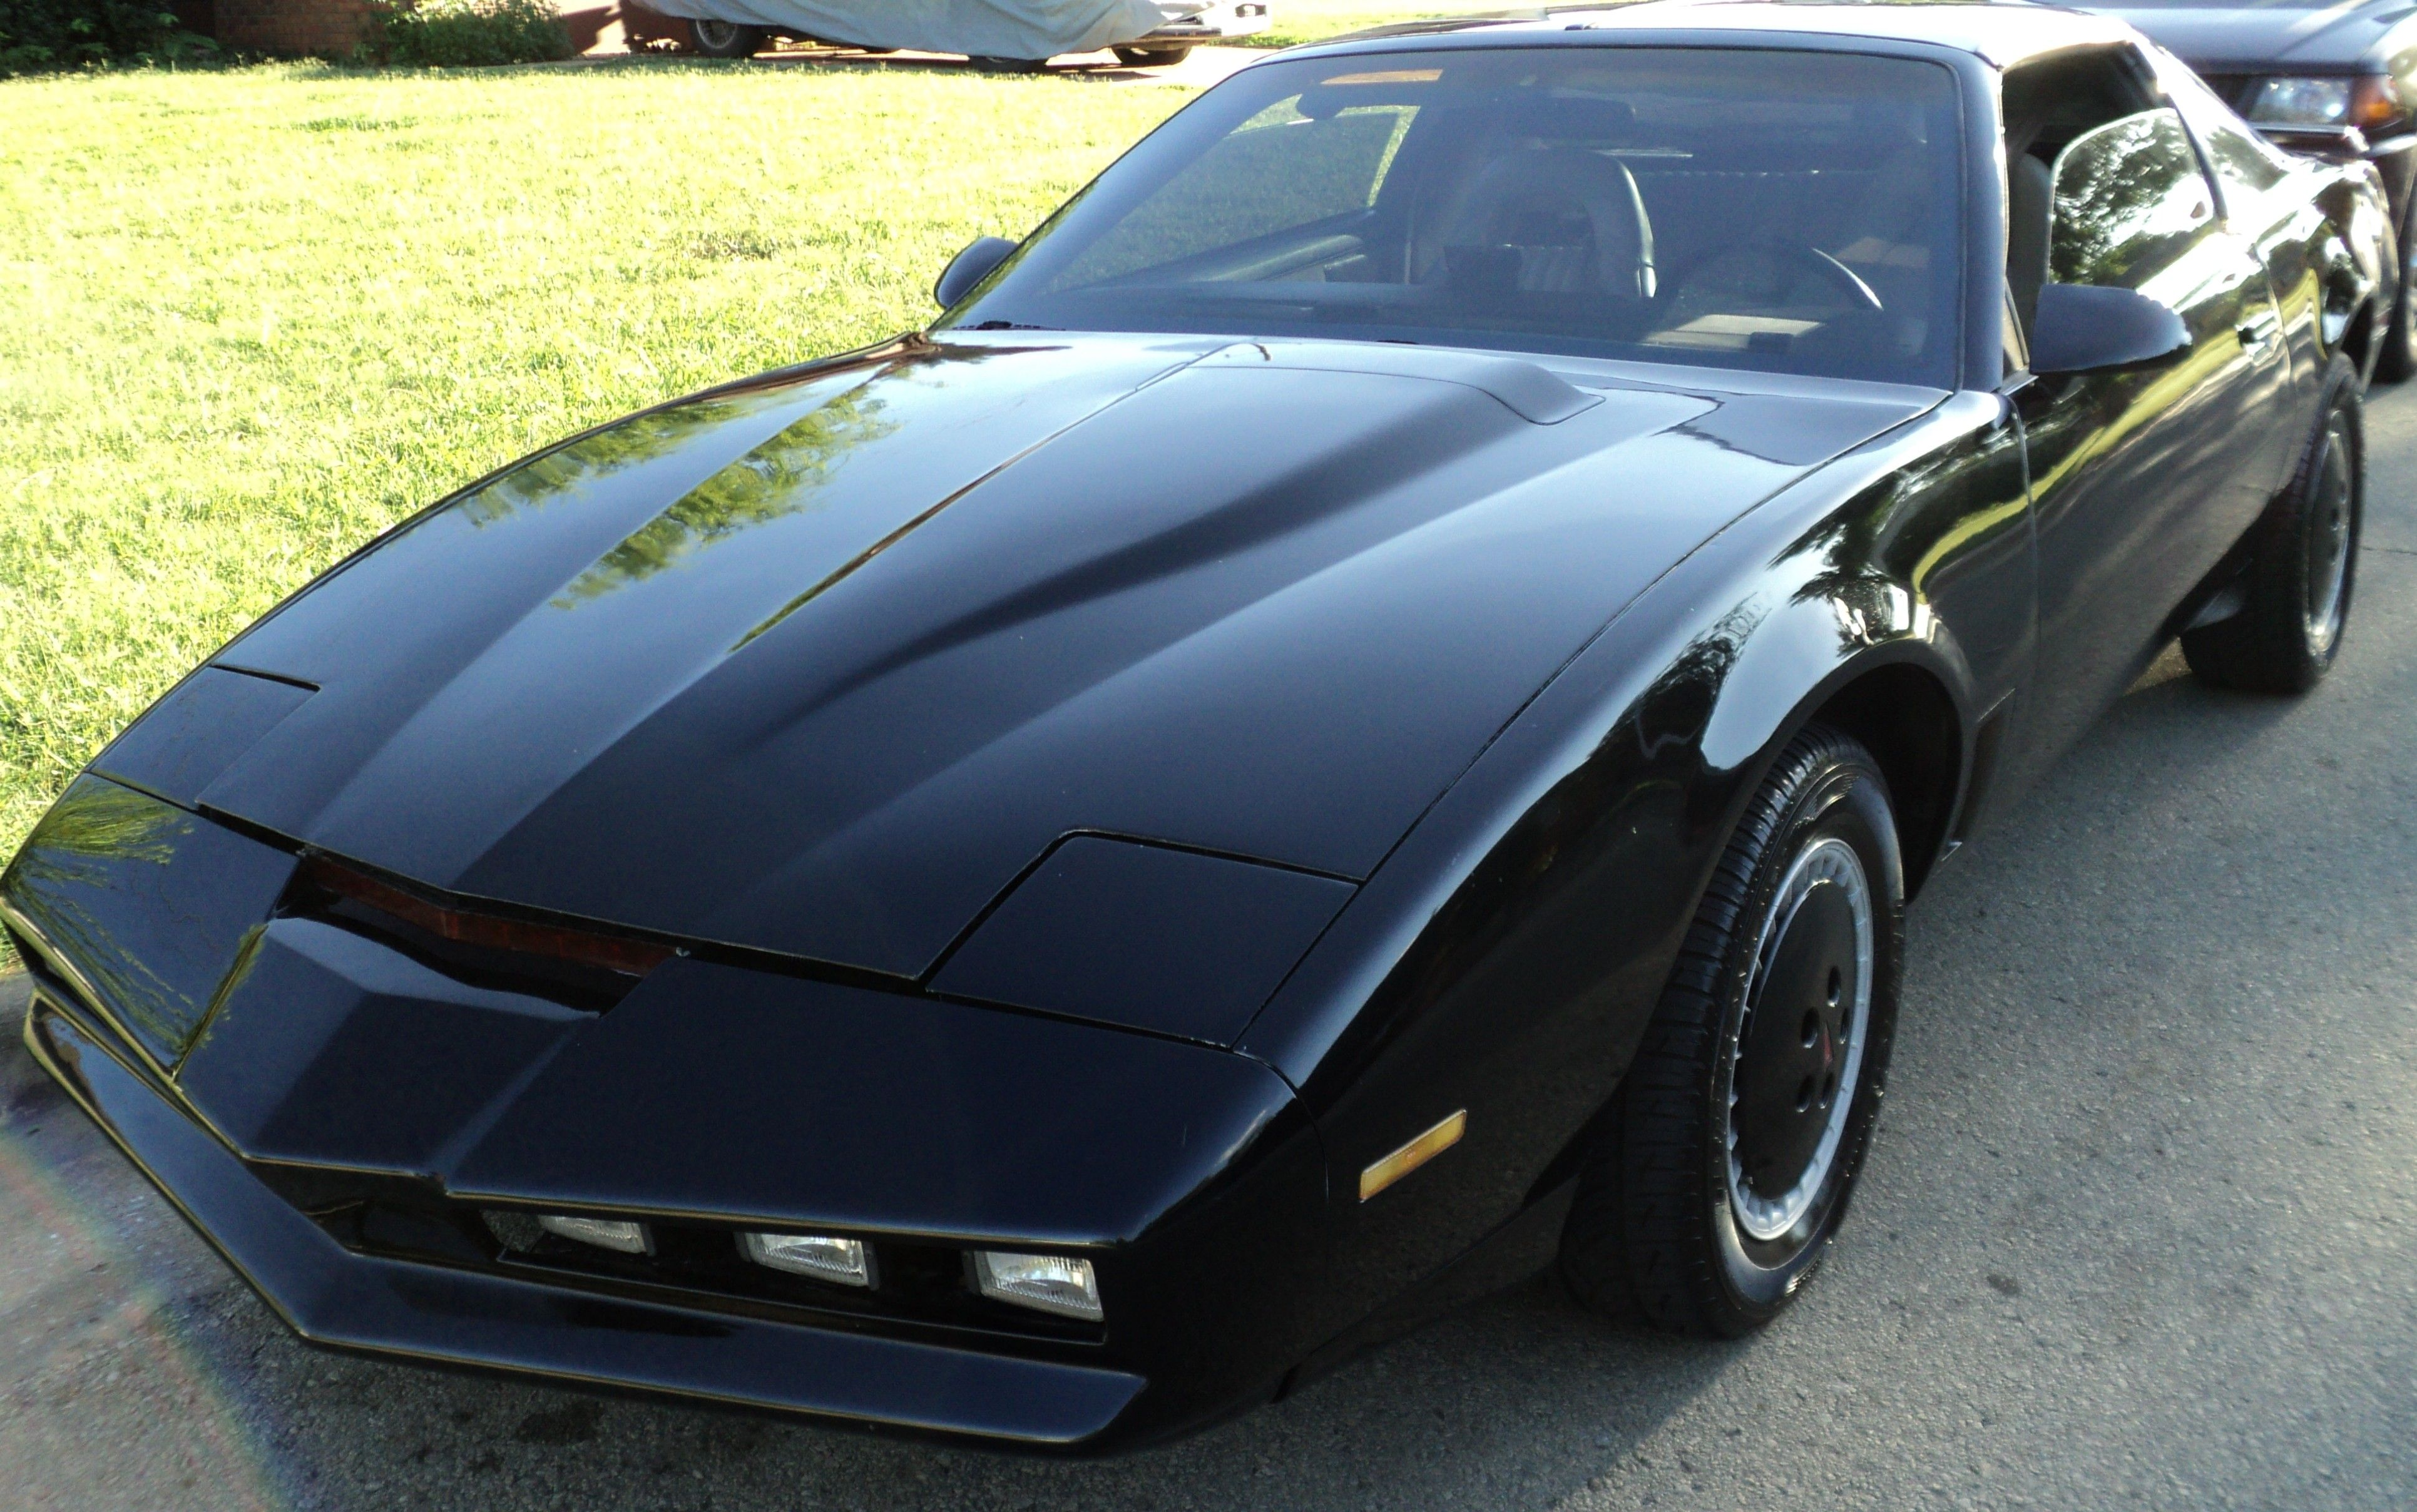 1982 trans am parts specializing in 1982 84 firebird trans am parts email at knight rider tv cars old school cars specializing in 1982 84 firebird trans